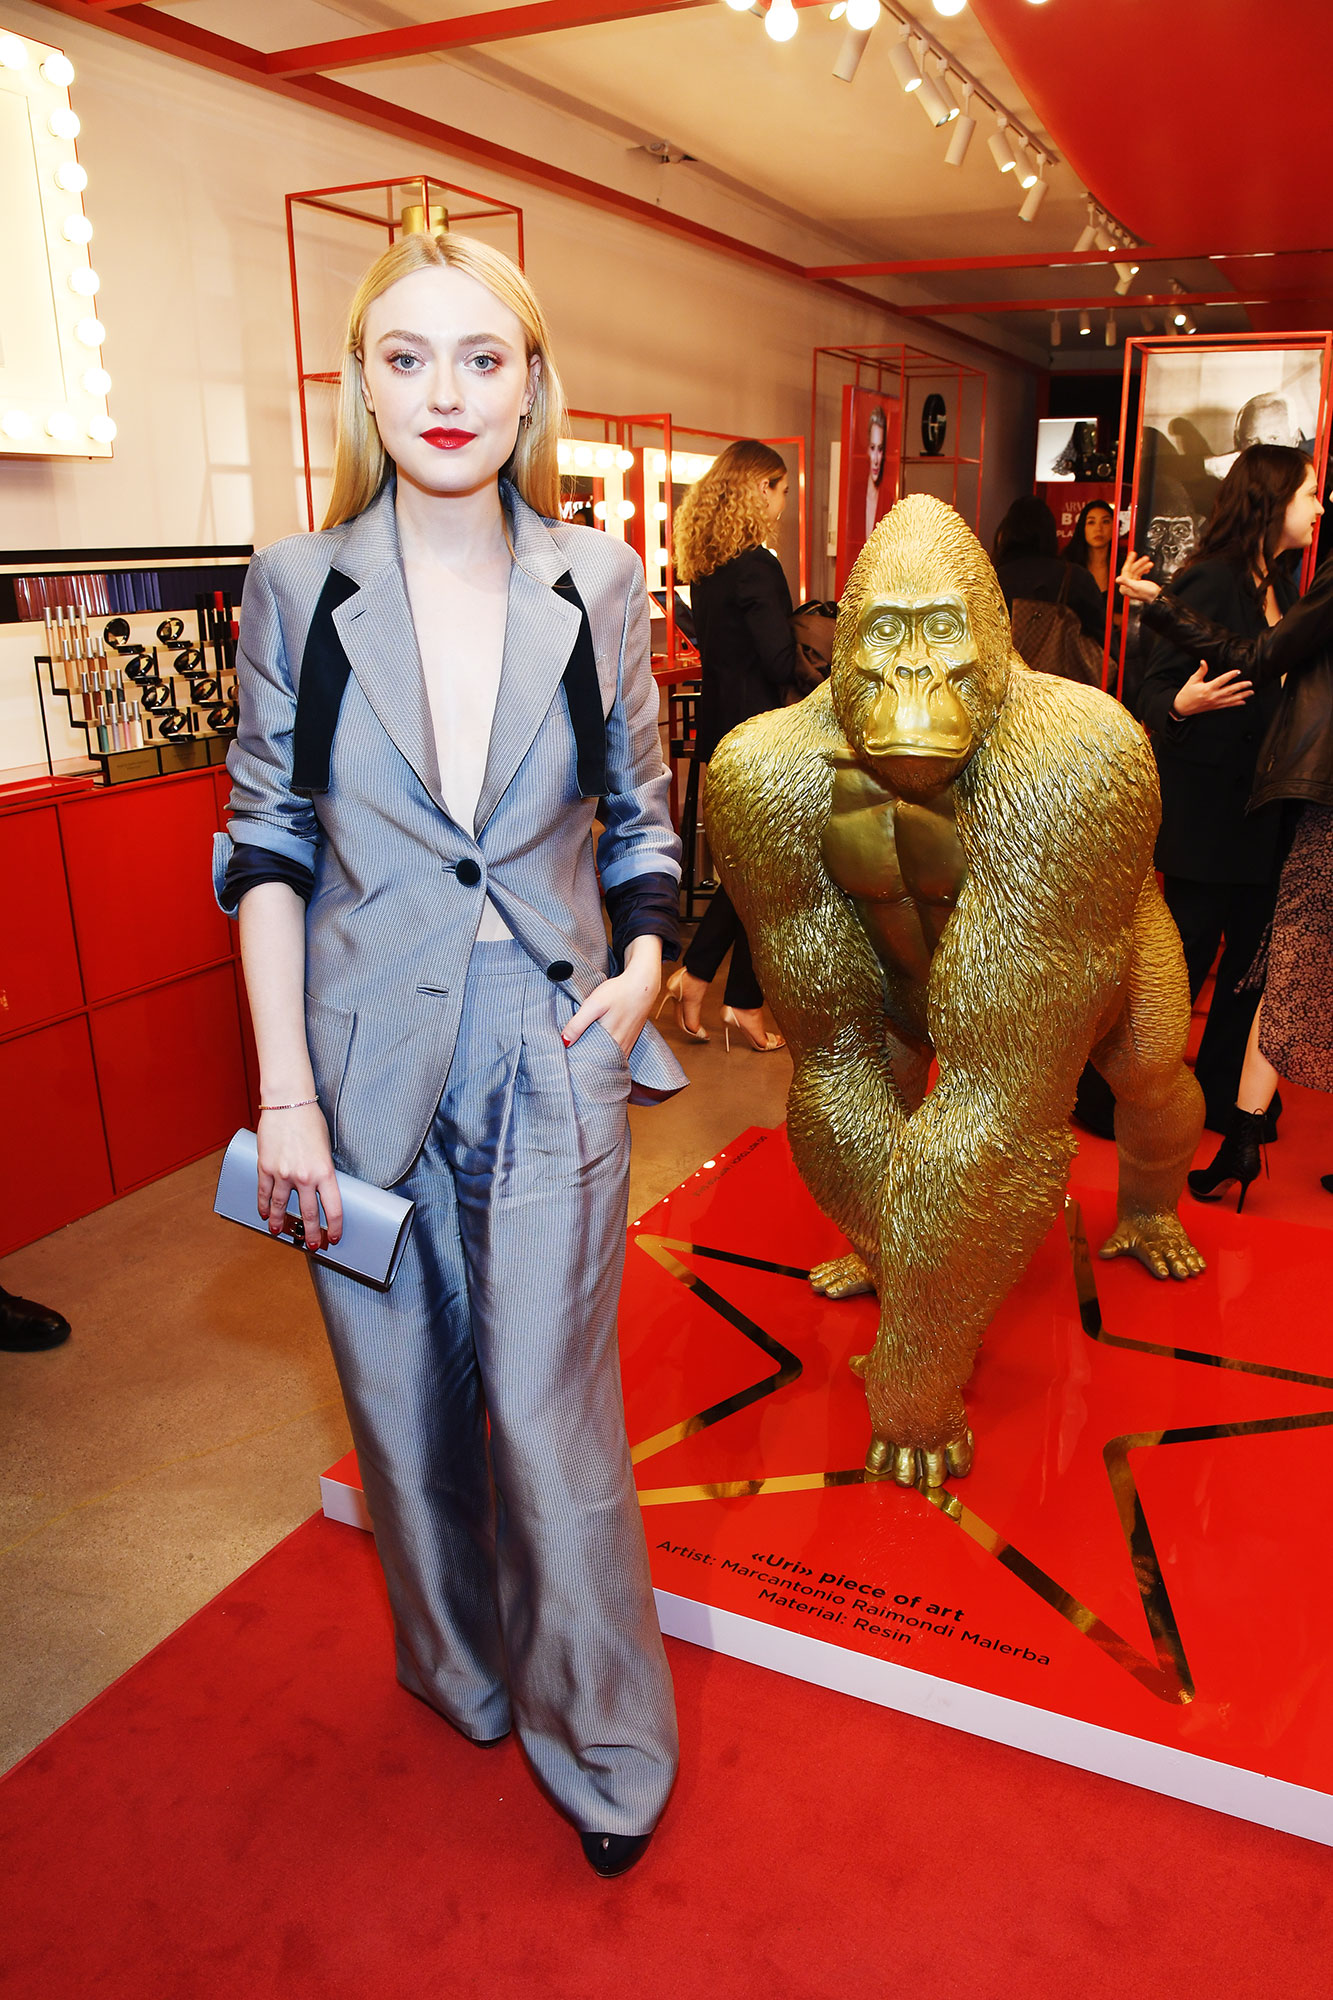 Dakota Fanning - When attending the Armani Box opening event in LA on February 6, the Alienist actress wore a slouchy grey ensemble with black details that looked seriously cool.